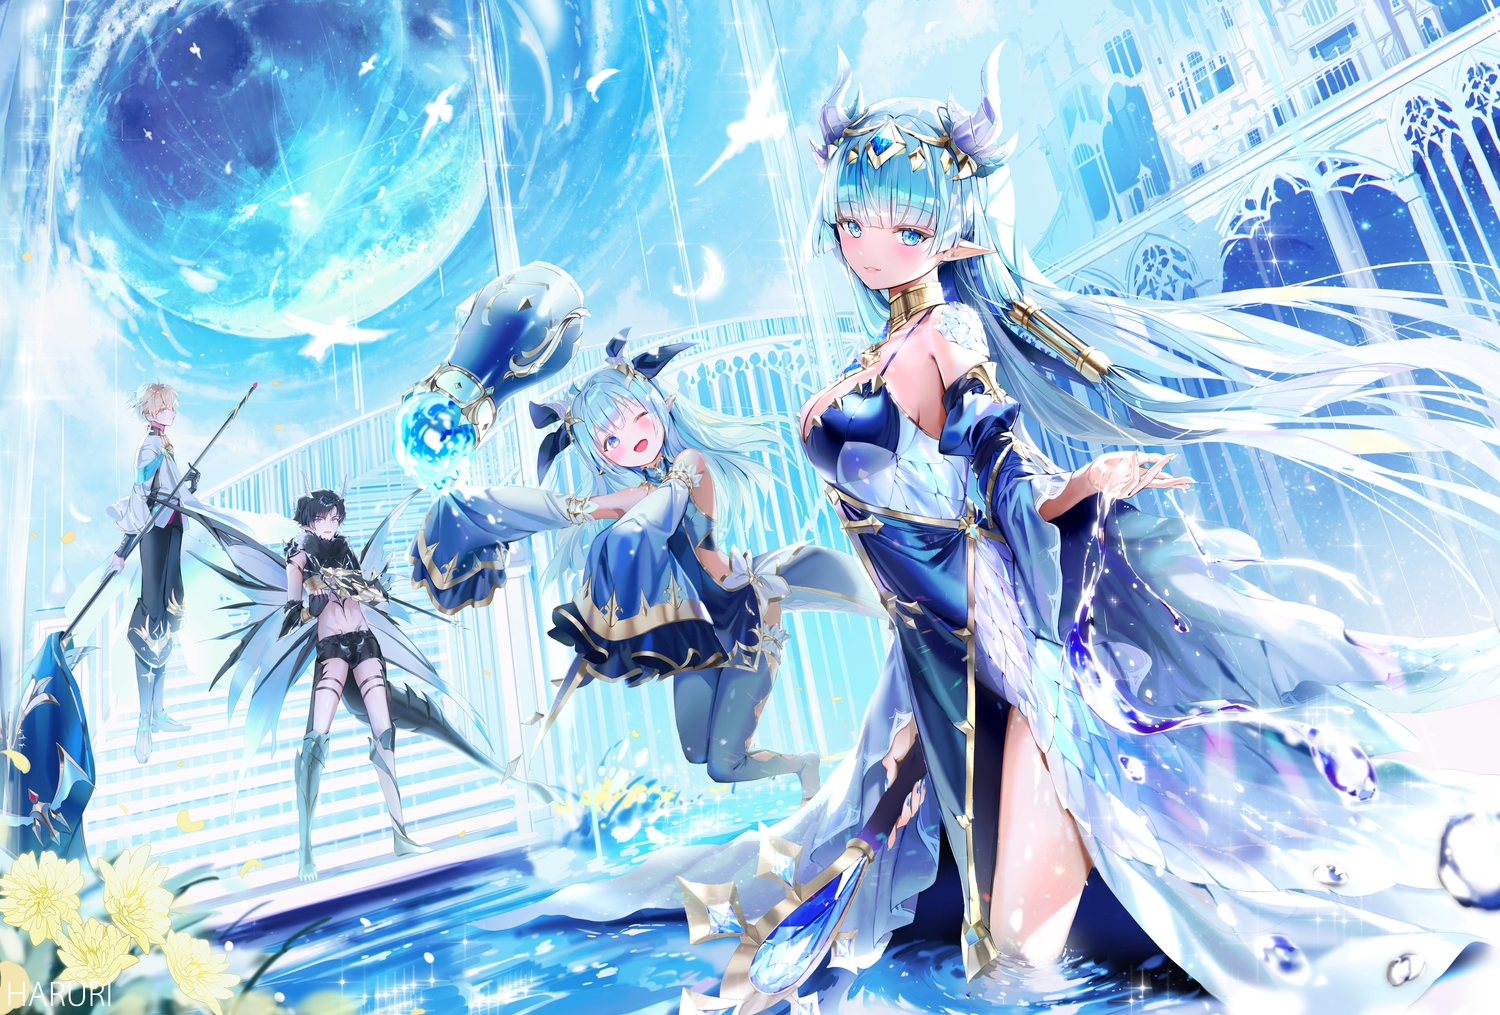 2girls aliasing black_hair blonde_hair blush bubbles building dress green_eyes green_hair group king's_raid laias_(king's_raid) lilia_(king's_raid) lucias_(king's_red) male mullpull neraxis_(king's_raid) pointed_ears short_hair staff stairs thighhighs water watermark weapon wings wink